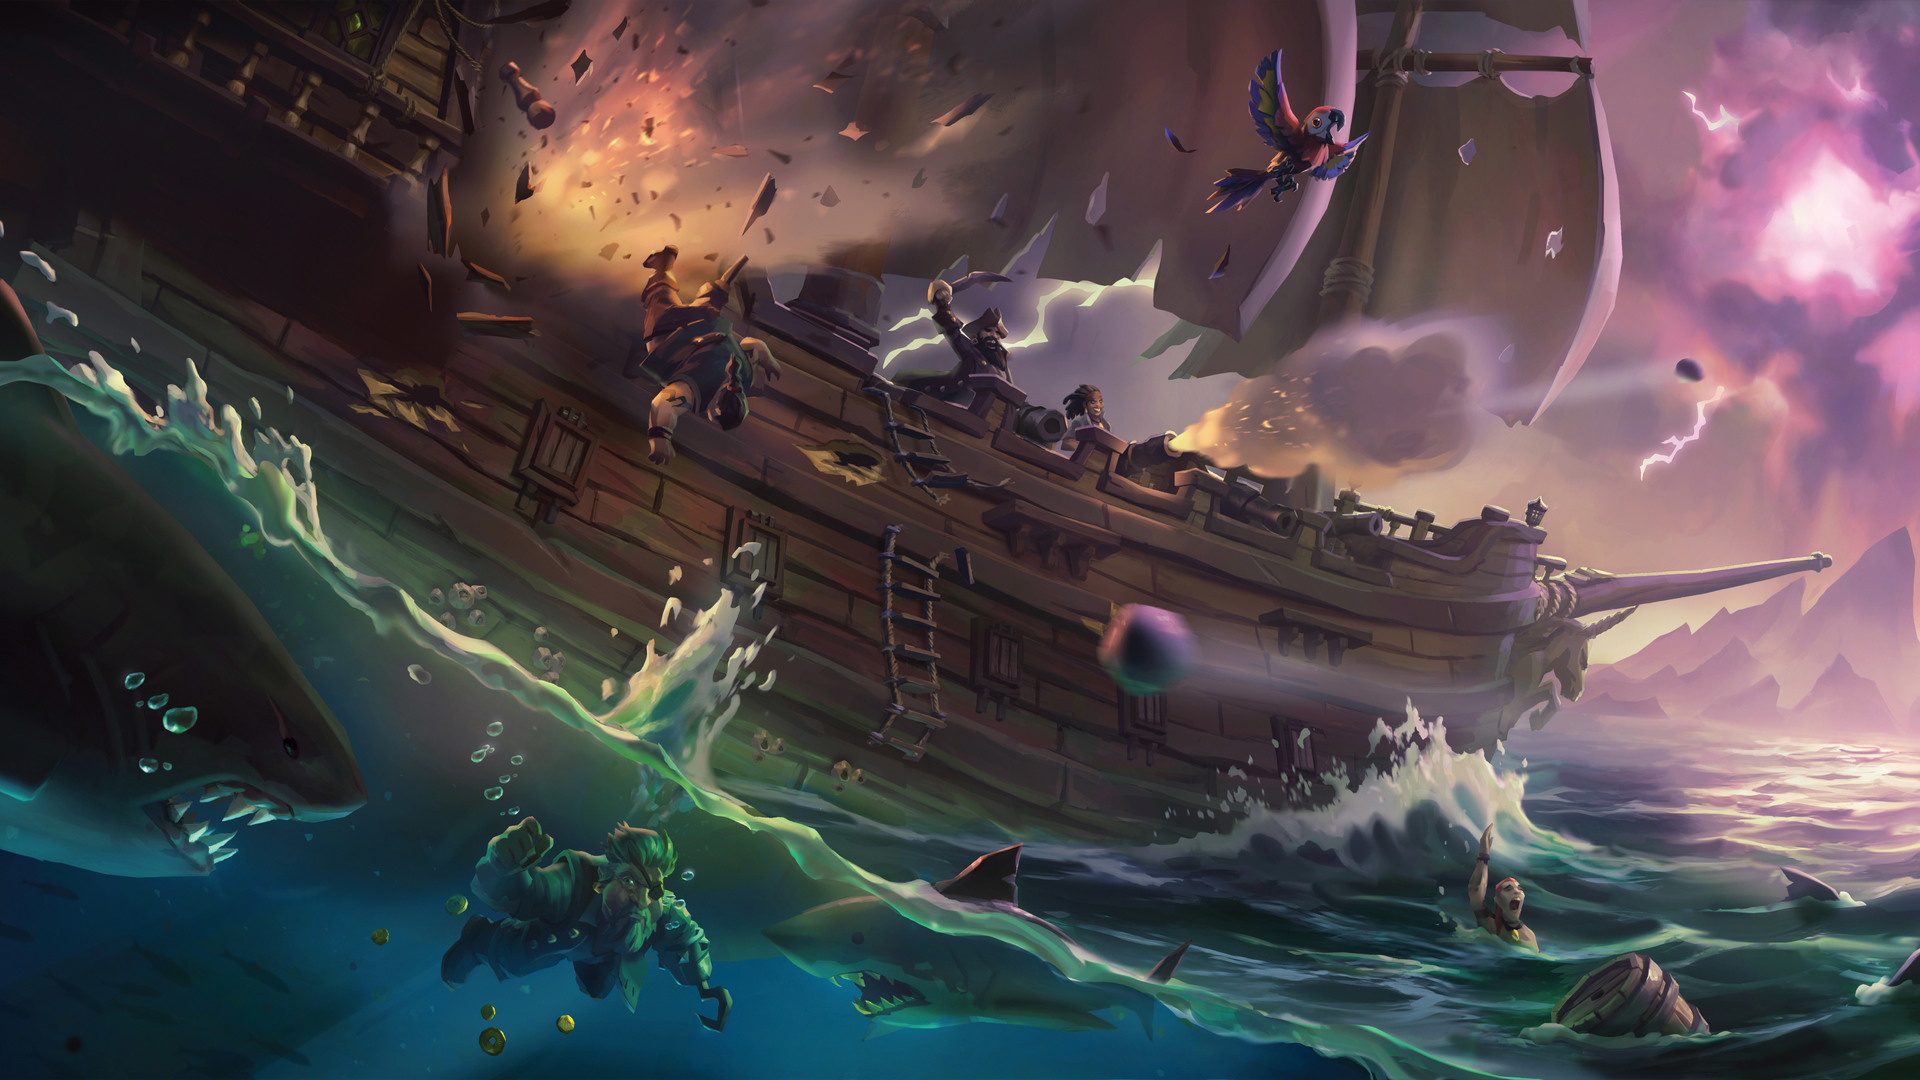 Sea of Thieves' new update changes a little and fixes a lot screenshot